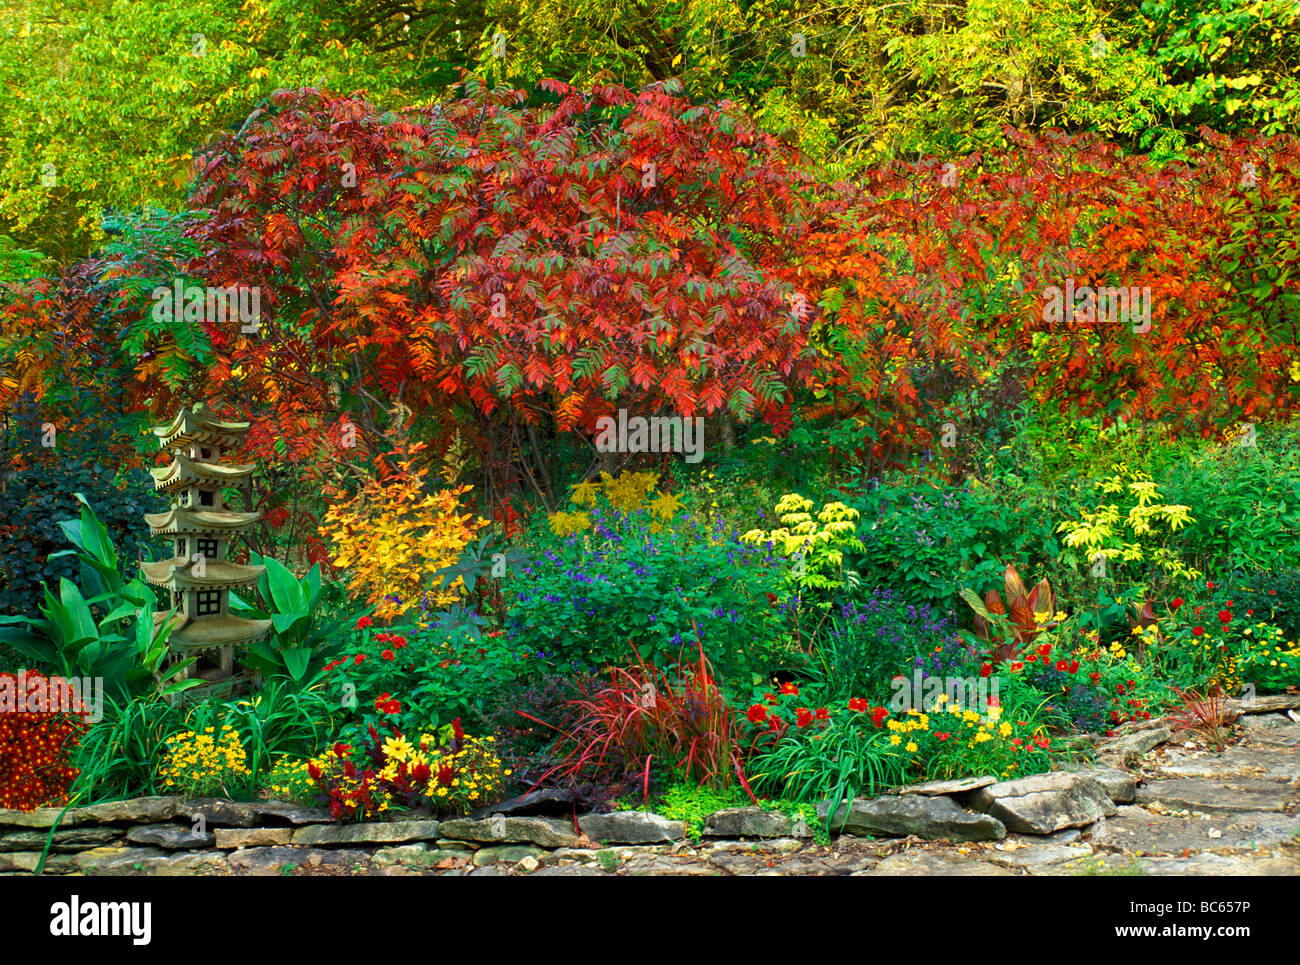 Ornamental Japanese Pagoda Statue Placed In Garden Of Bright Colored  Blooming Plants In A Red And Yellow Garden, Midwest USA